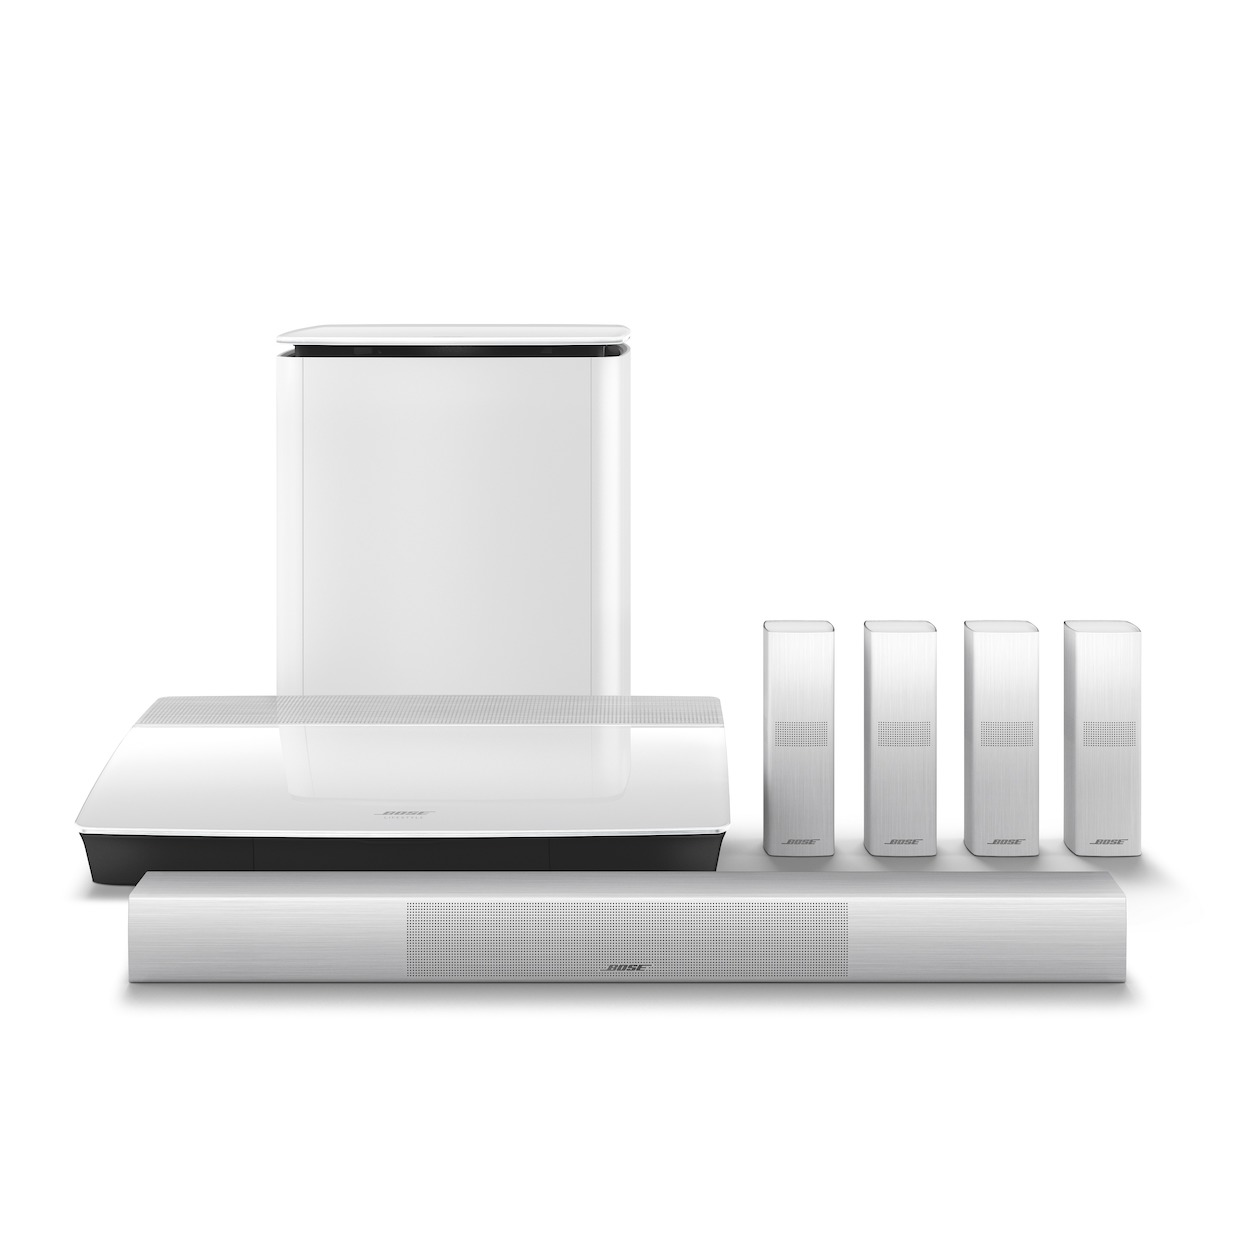 Bose 5.1 systeem Lifestyle 650 wit